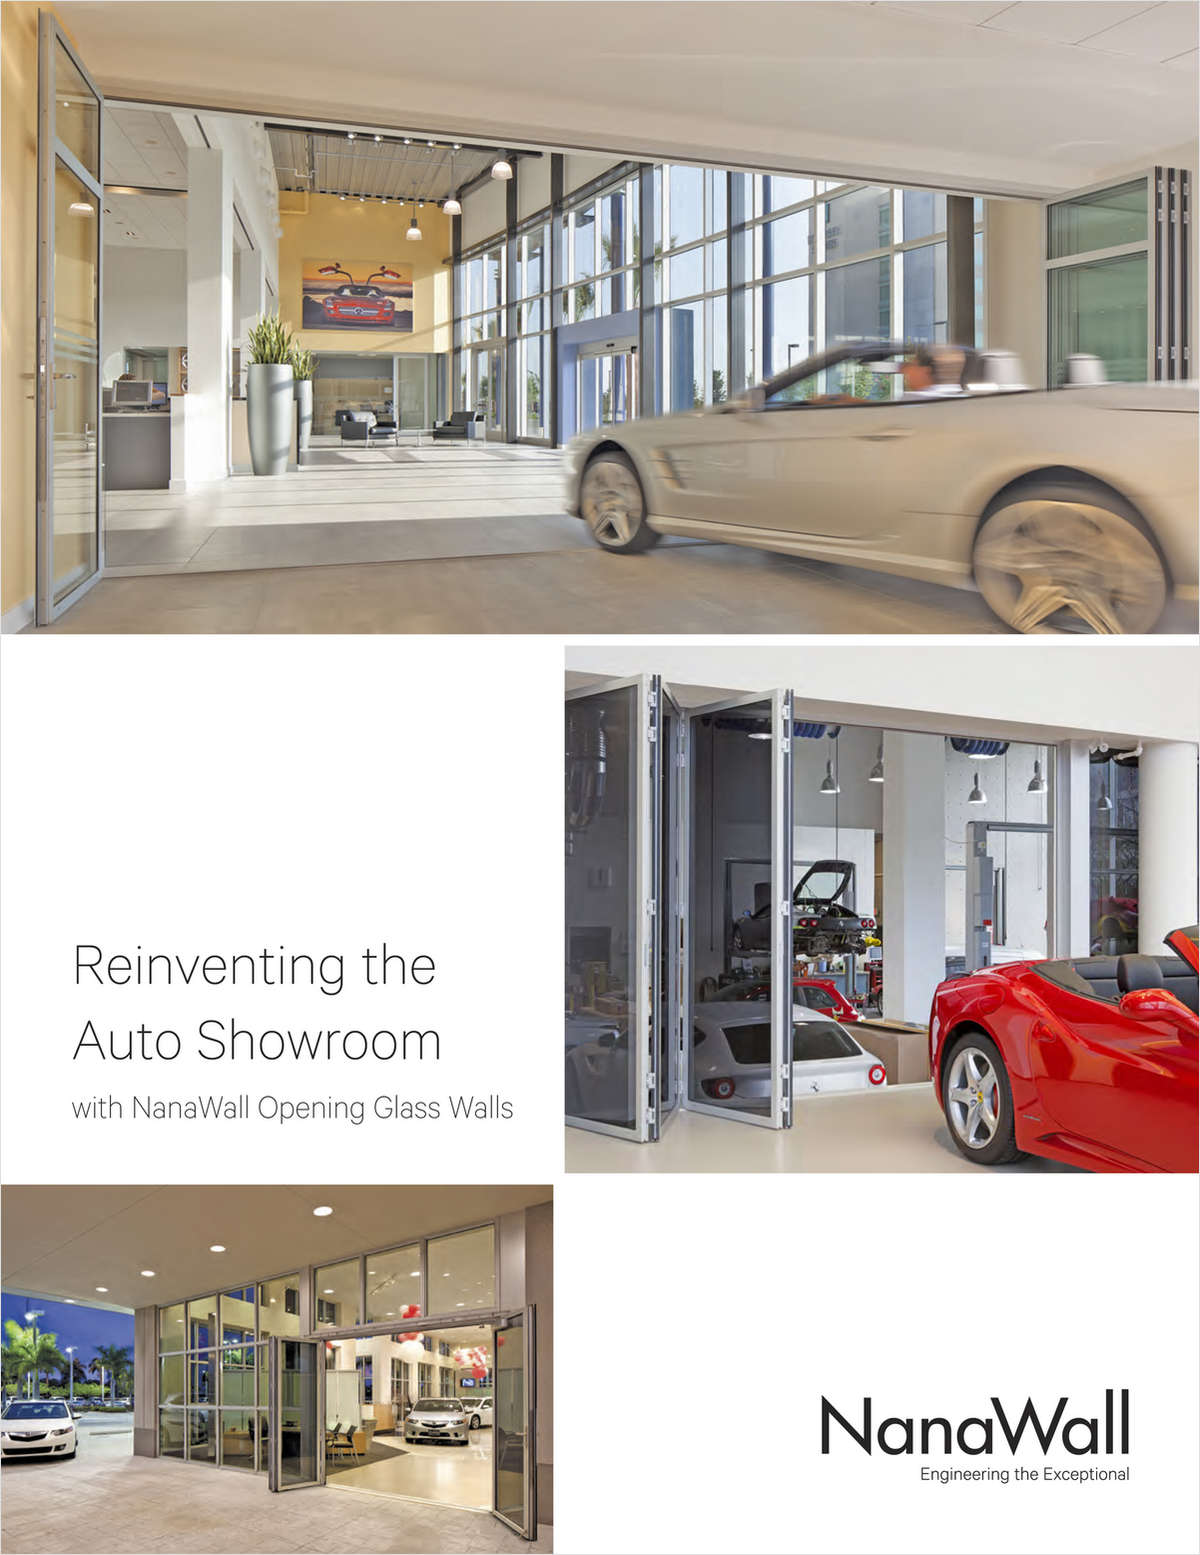 Reinventing the Auto Showroom with NanaWall Opening Glass Walls